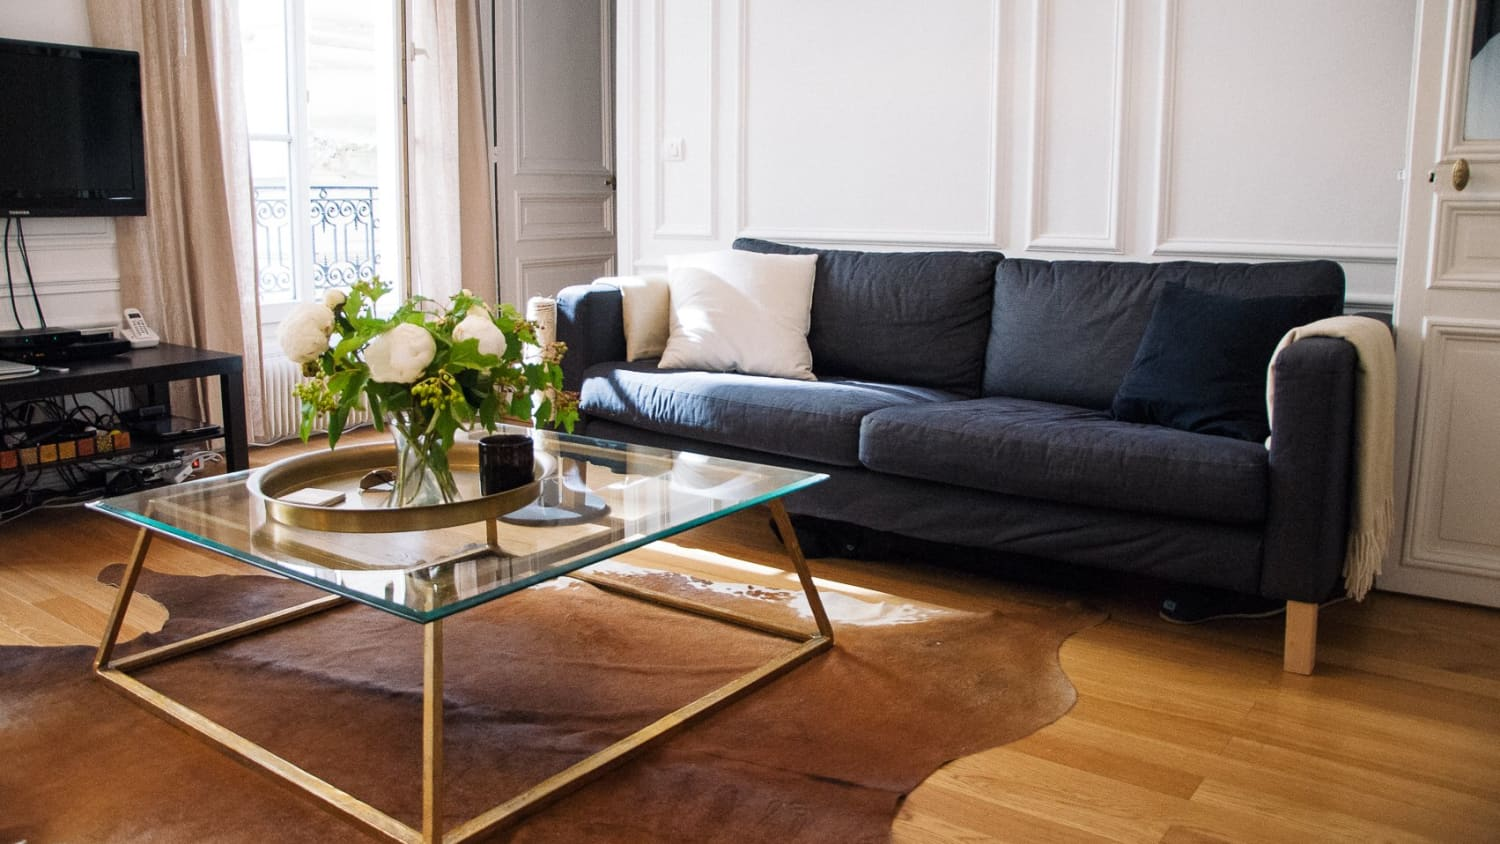 10 Modern Affordable Furniture Stores That Aren\'t IKEA ...